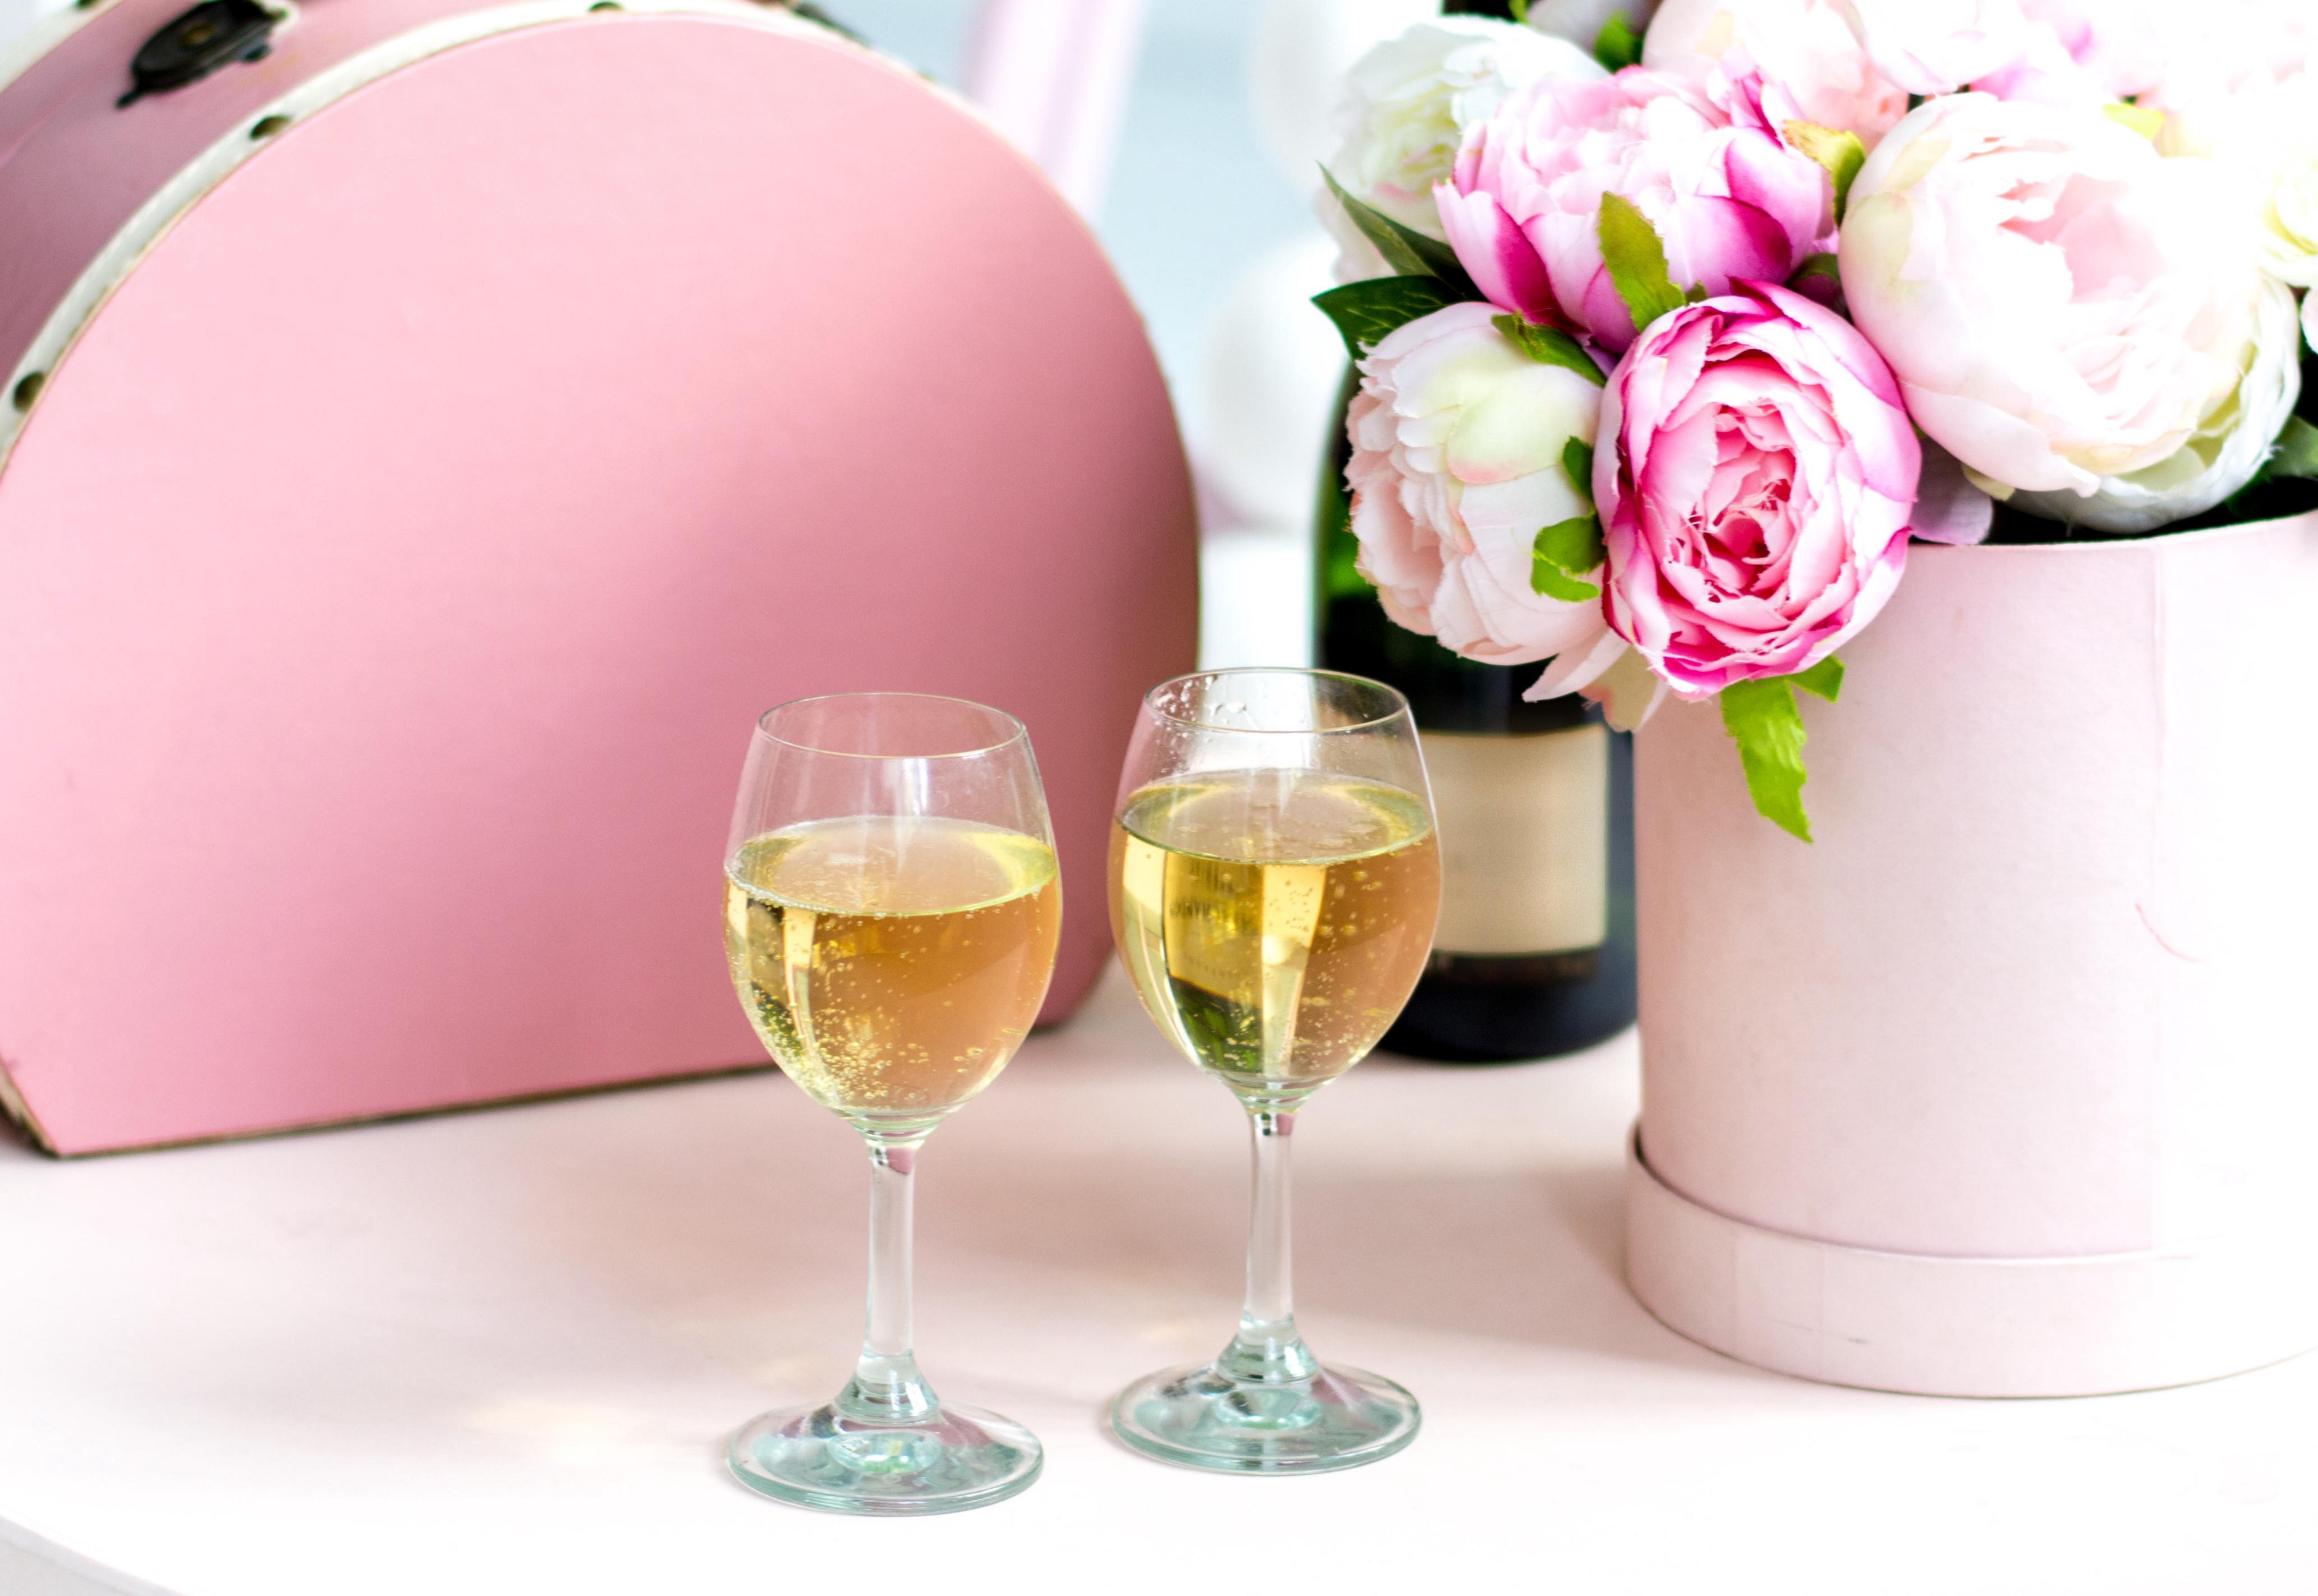 Two glasses of sparkling wine sit next to a bouquet of pink and white roses.